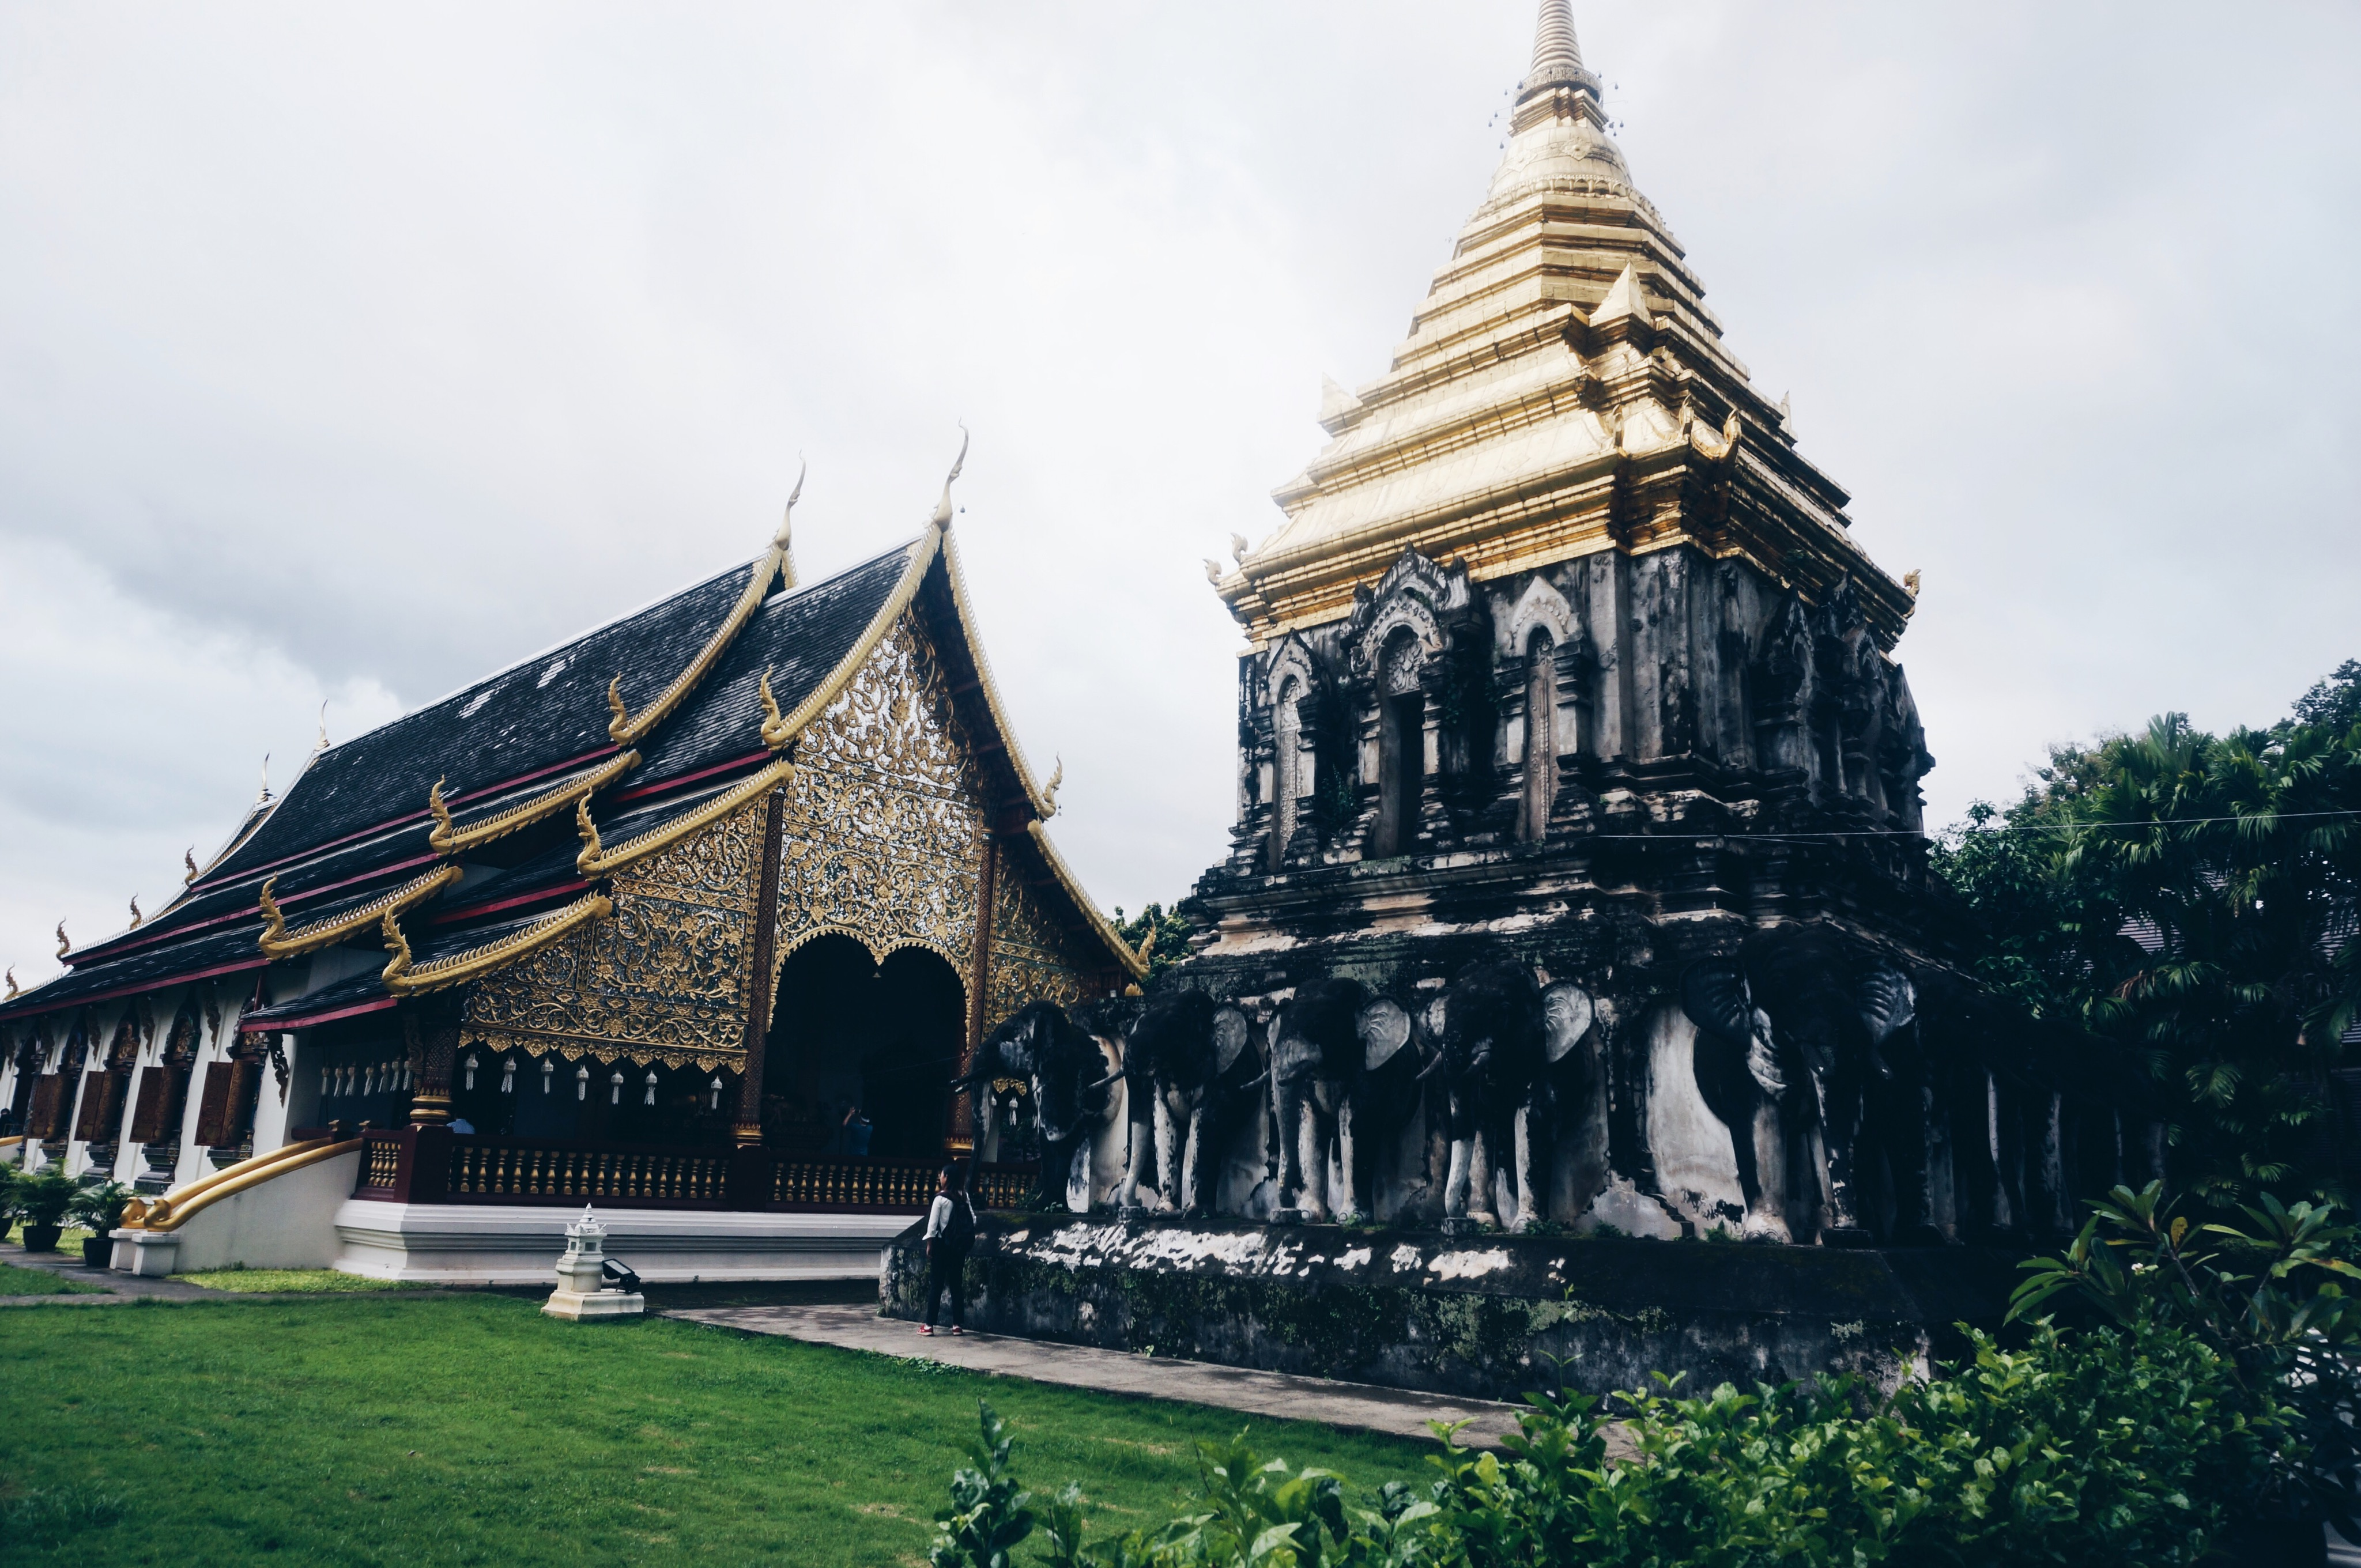 Tempel in Thailand, Chiang Mai